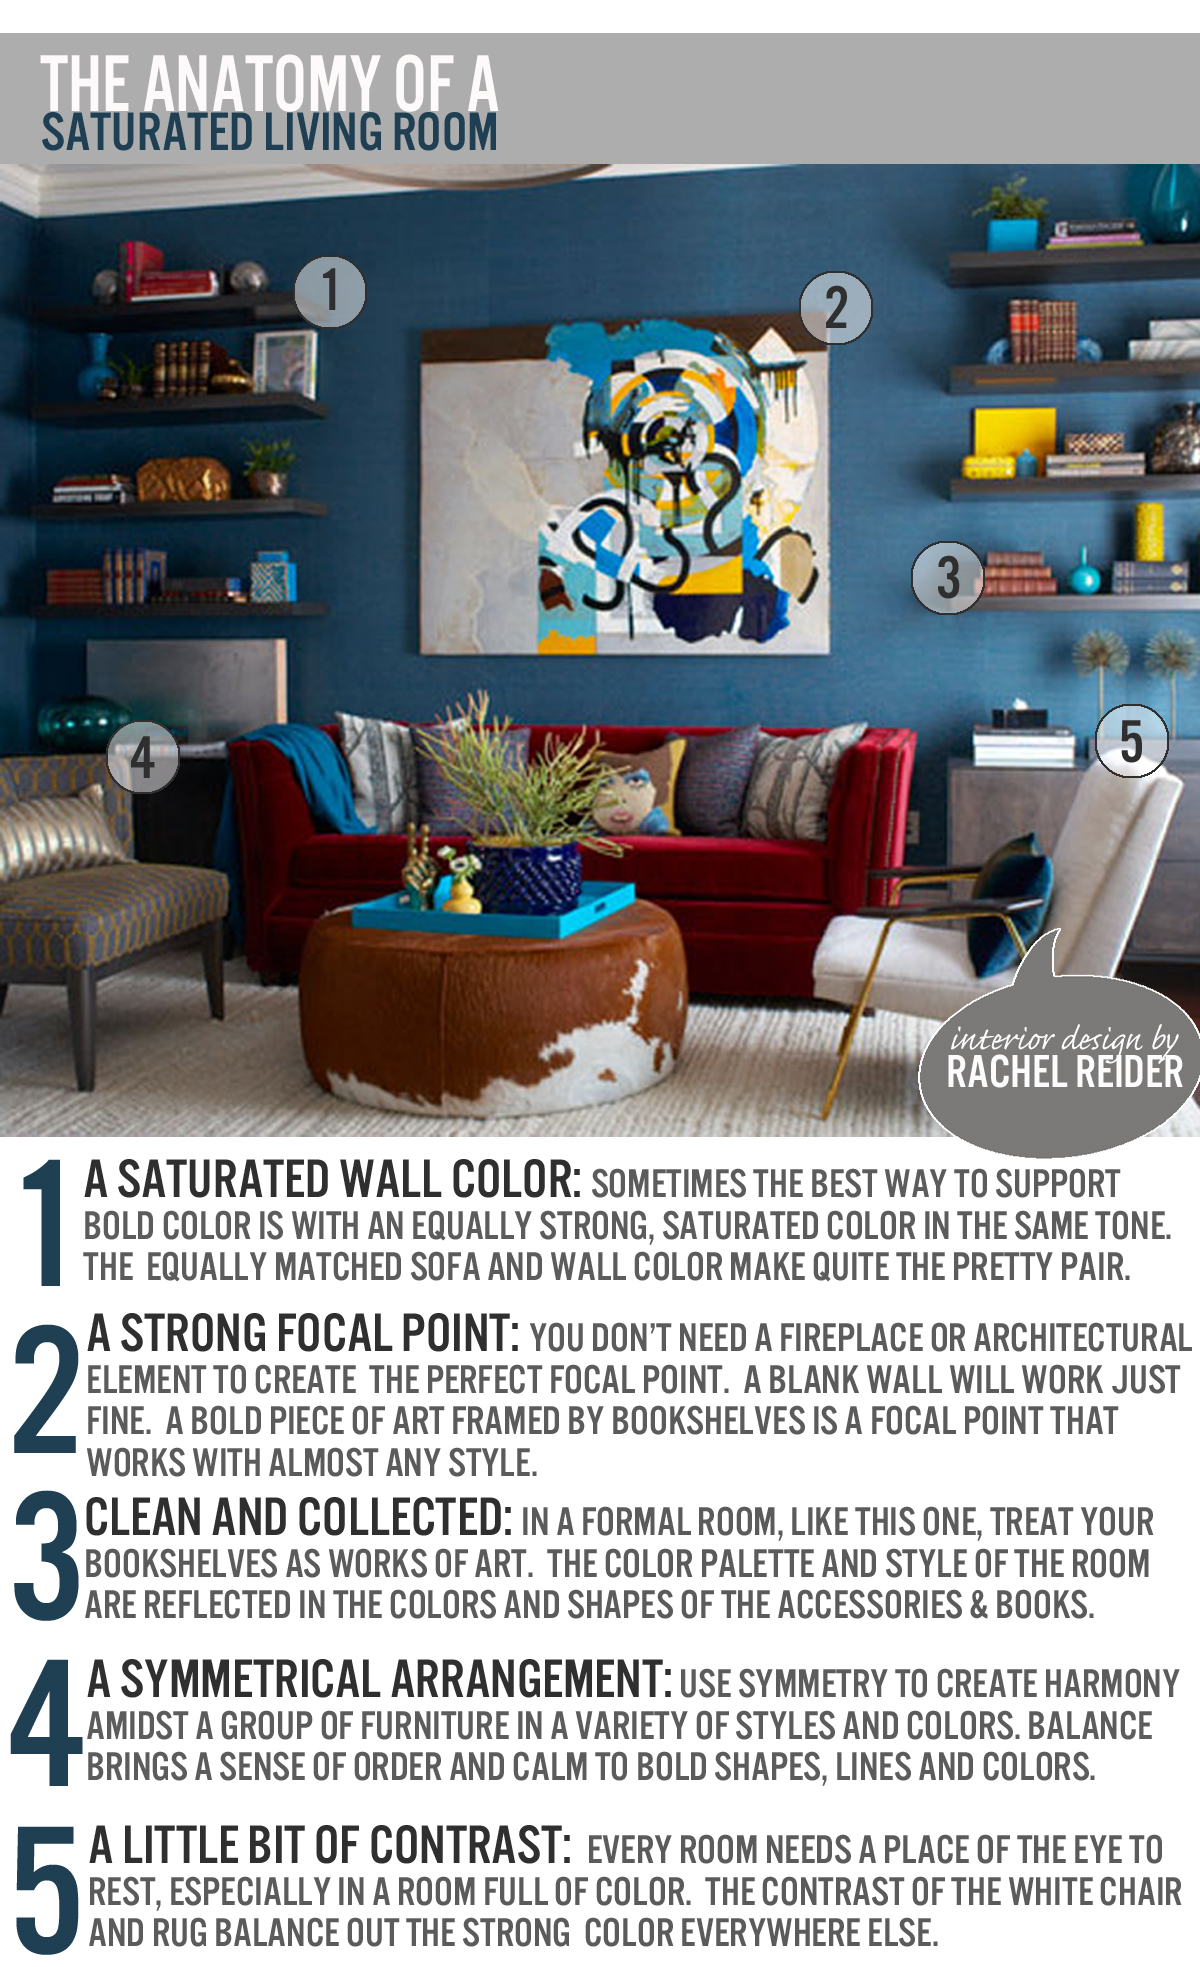 The Anatomy Of A Saturated Living Room